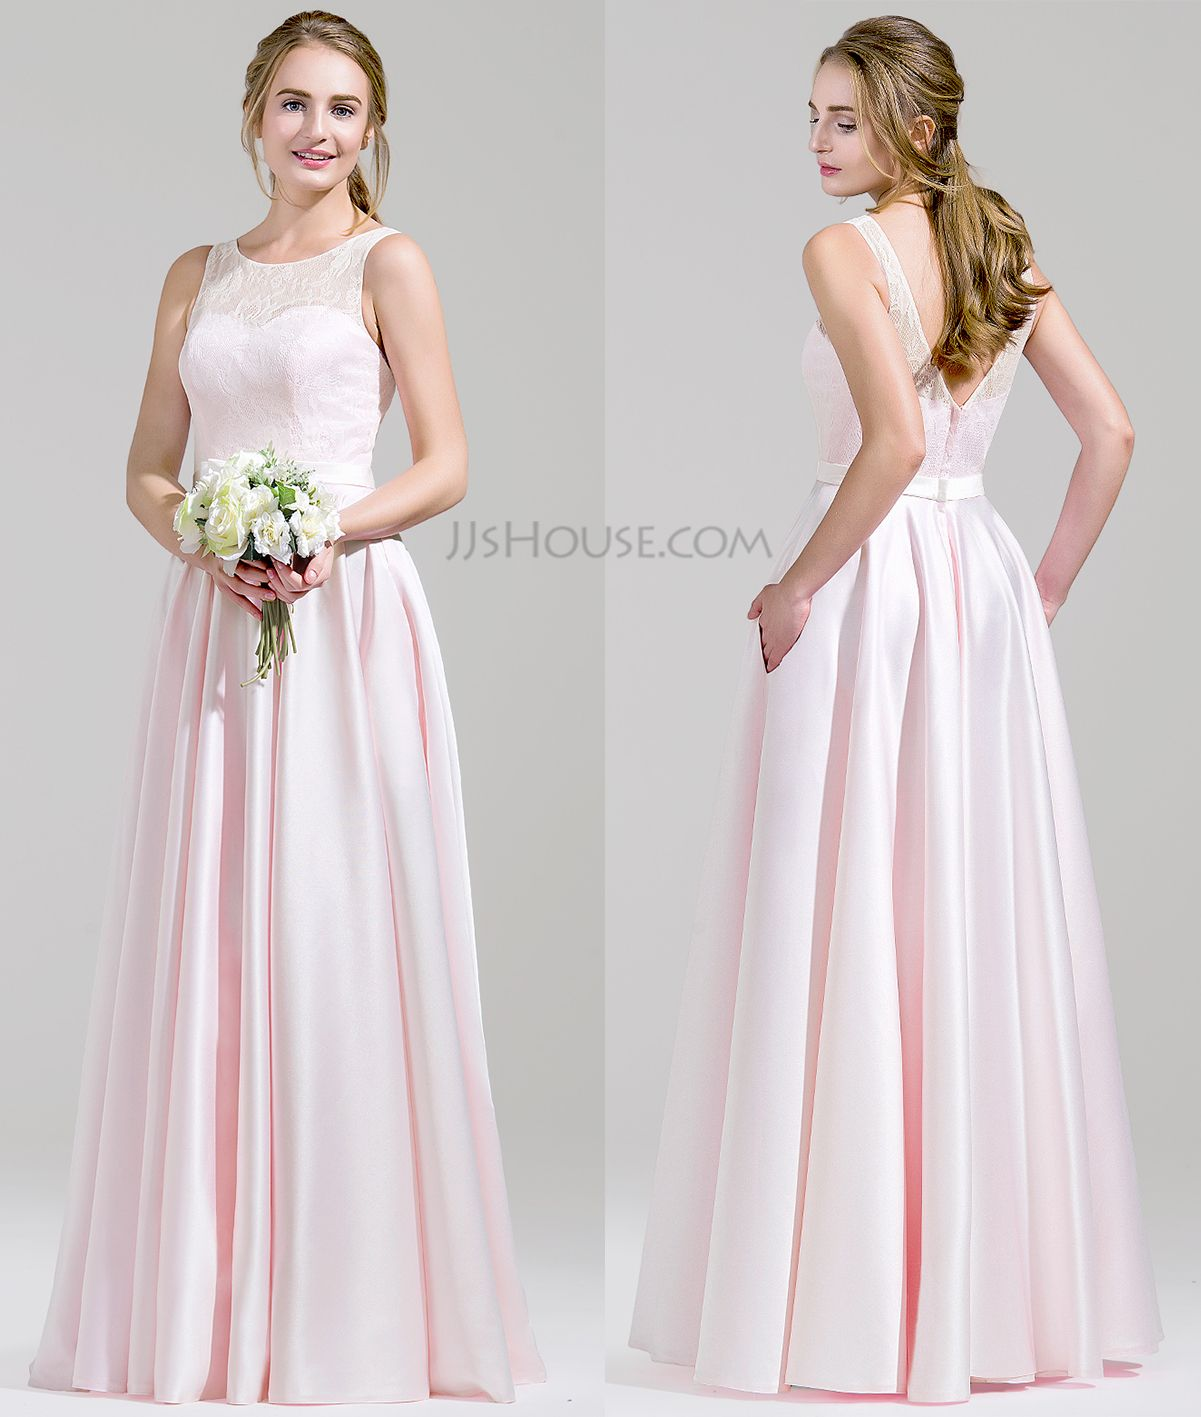 This bridesmaid dress will look great on your girls. #jjshouse ...